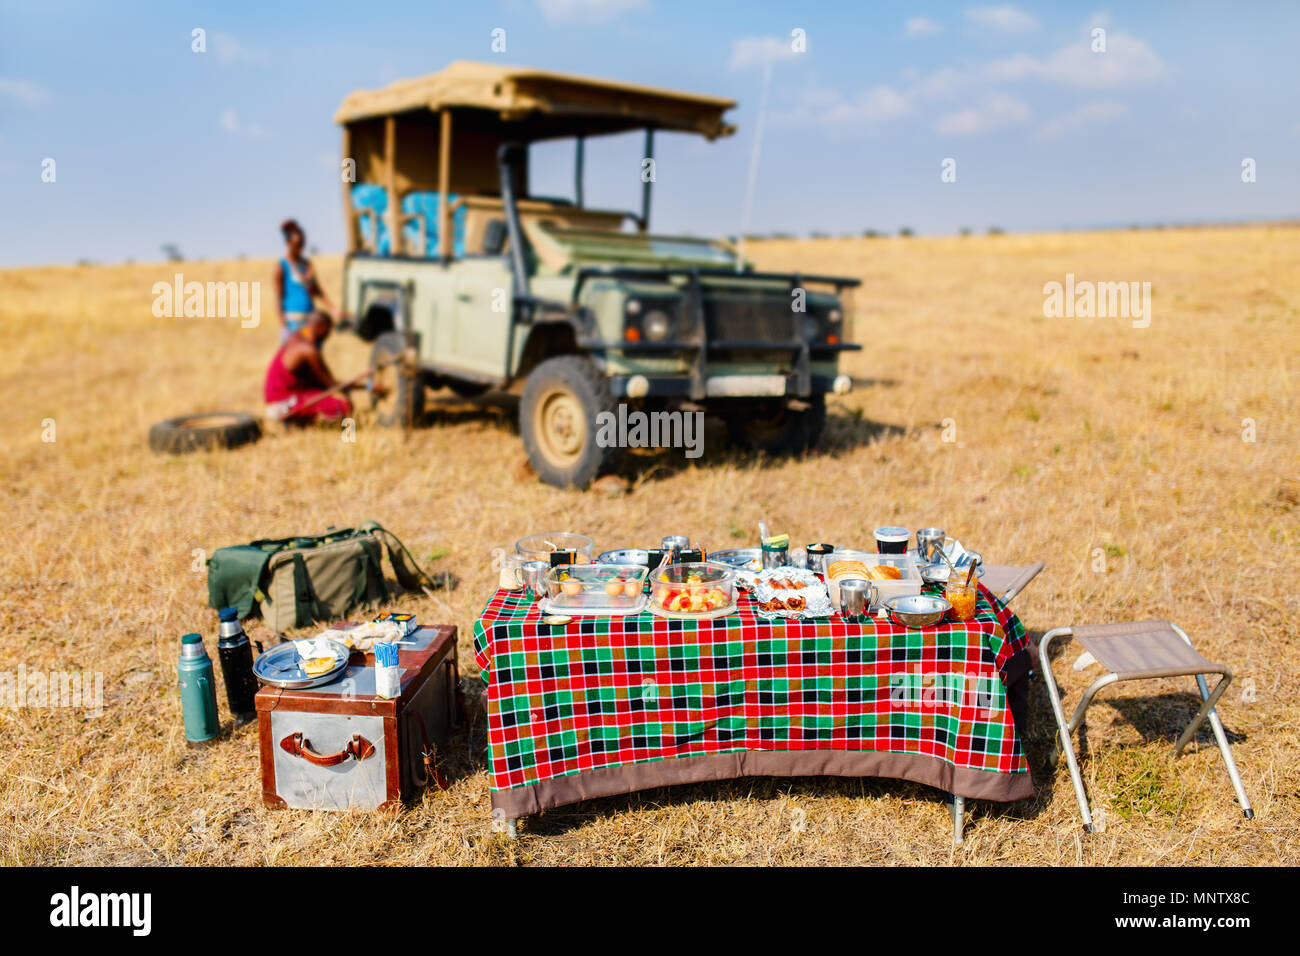 Luxury safari bush breakfast in Kenya Africa - Stock Image